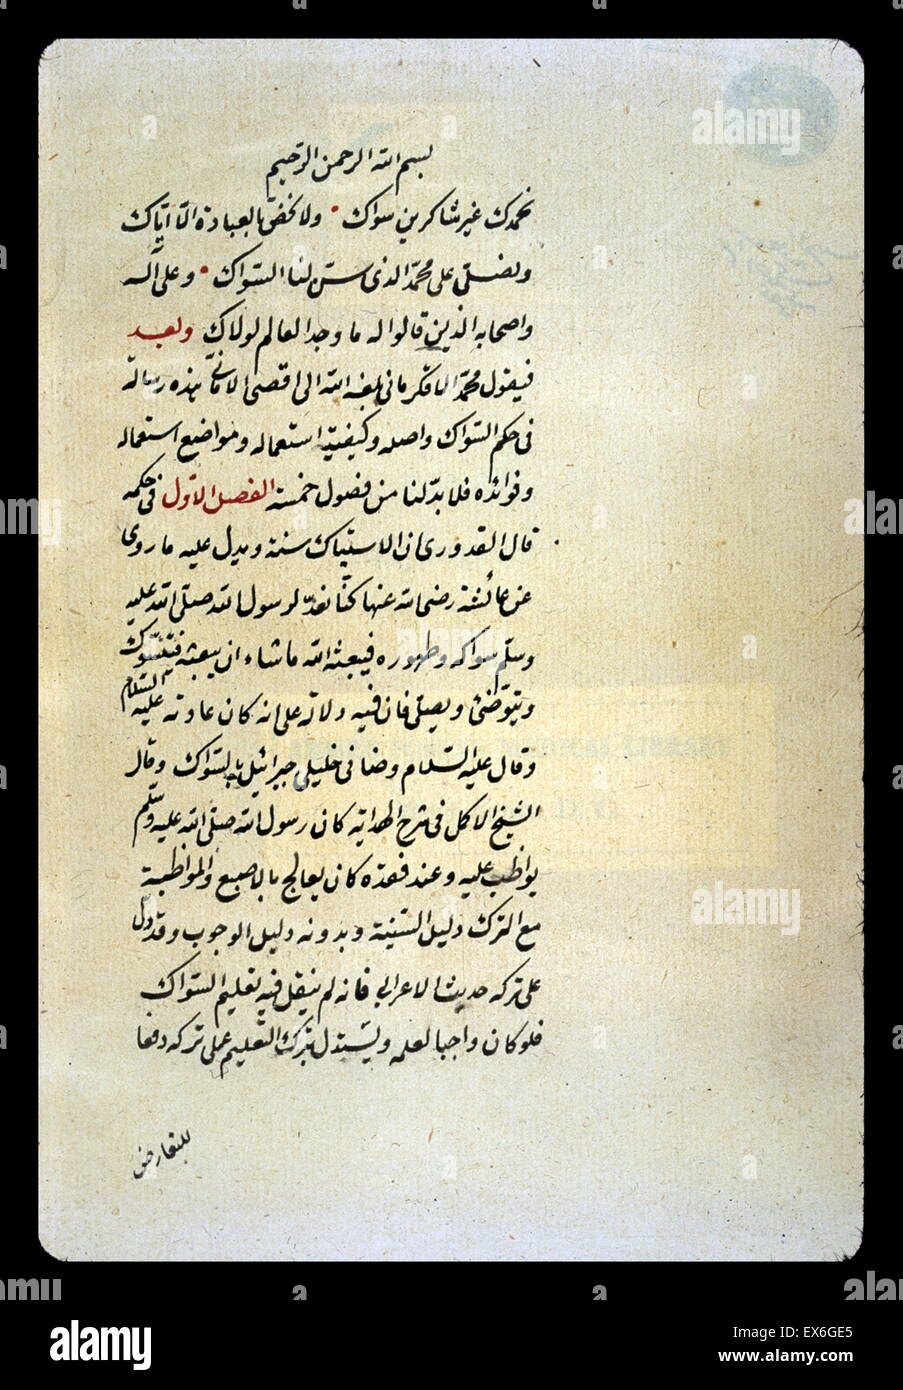 the opening of an arabic essay on the use of the toothbrush siwak stock photo the opening of an arabic essay on the use of the toothbrush siwak written by mu ammad al qkirm n in the mid 18th century no other copy is